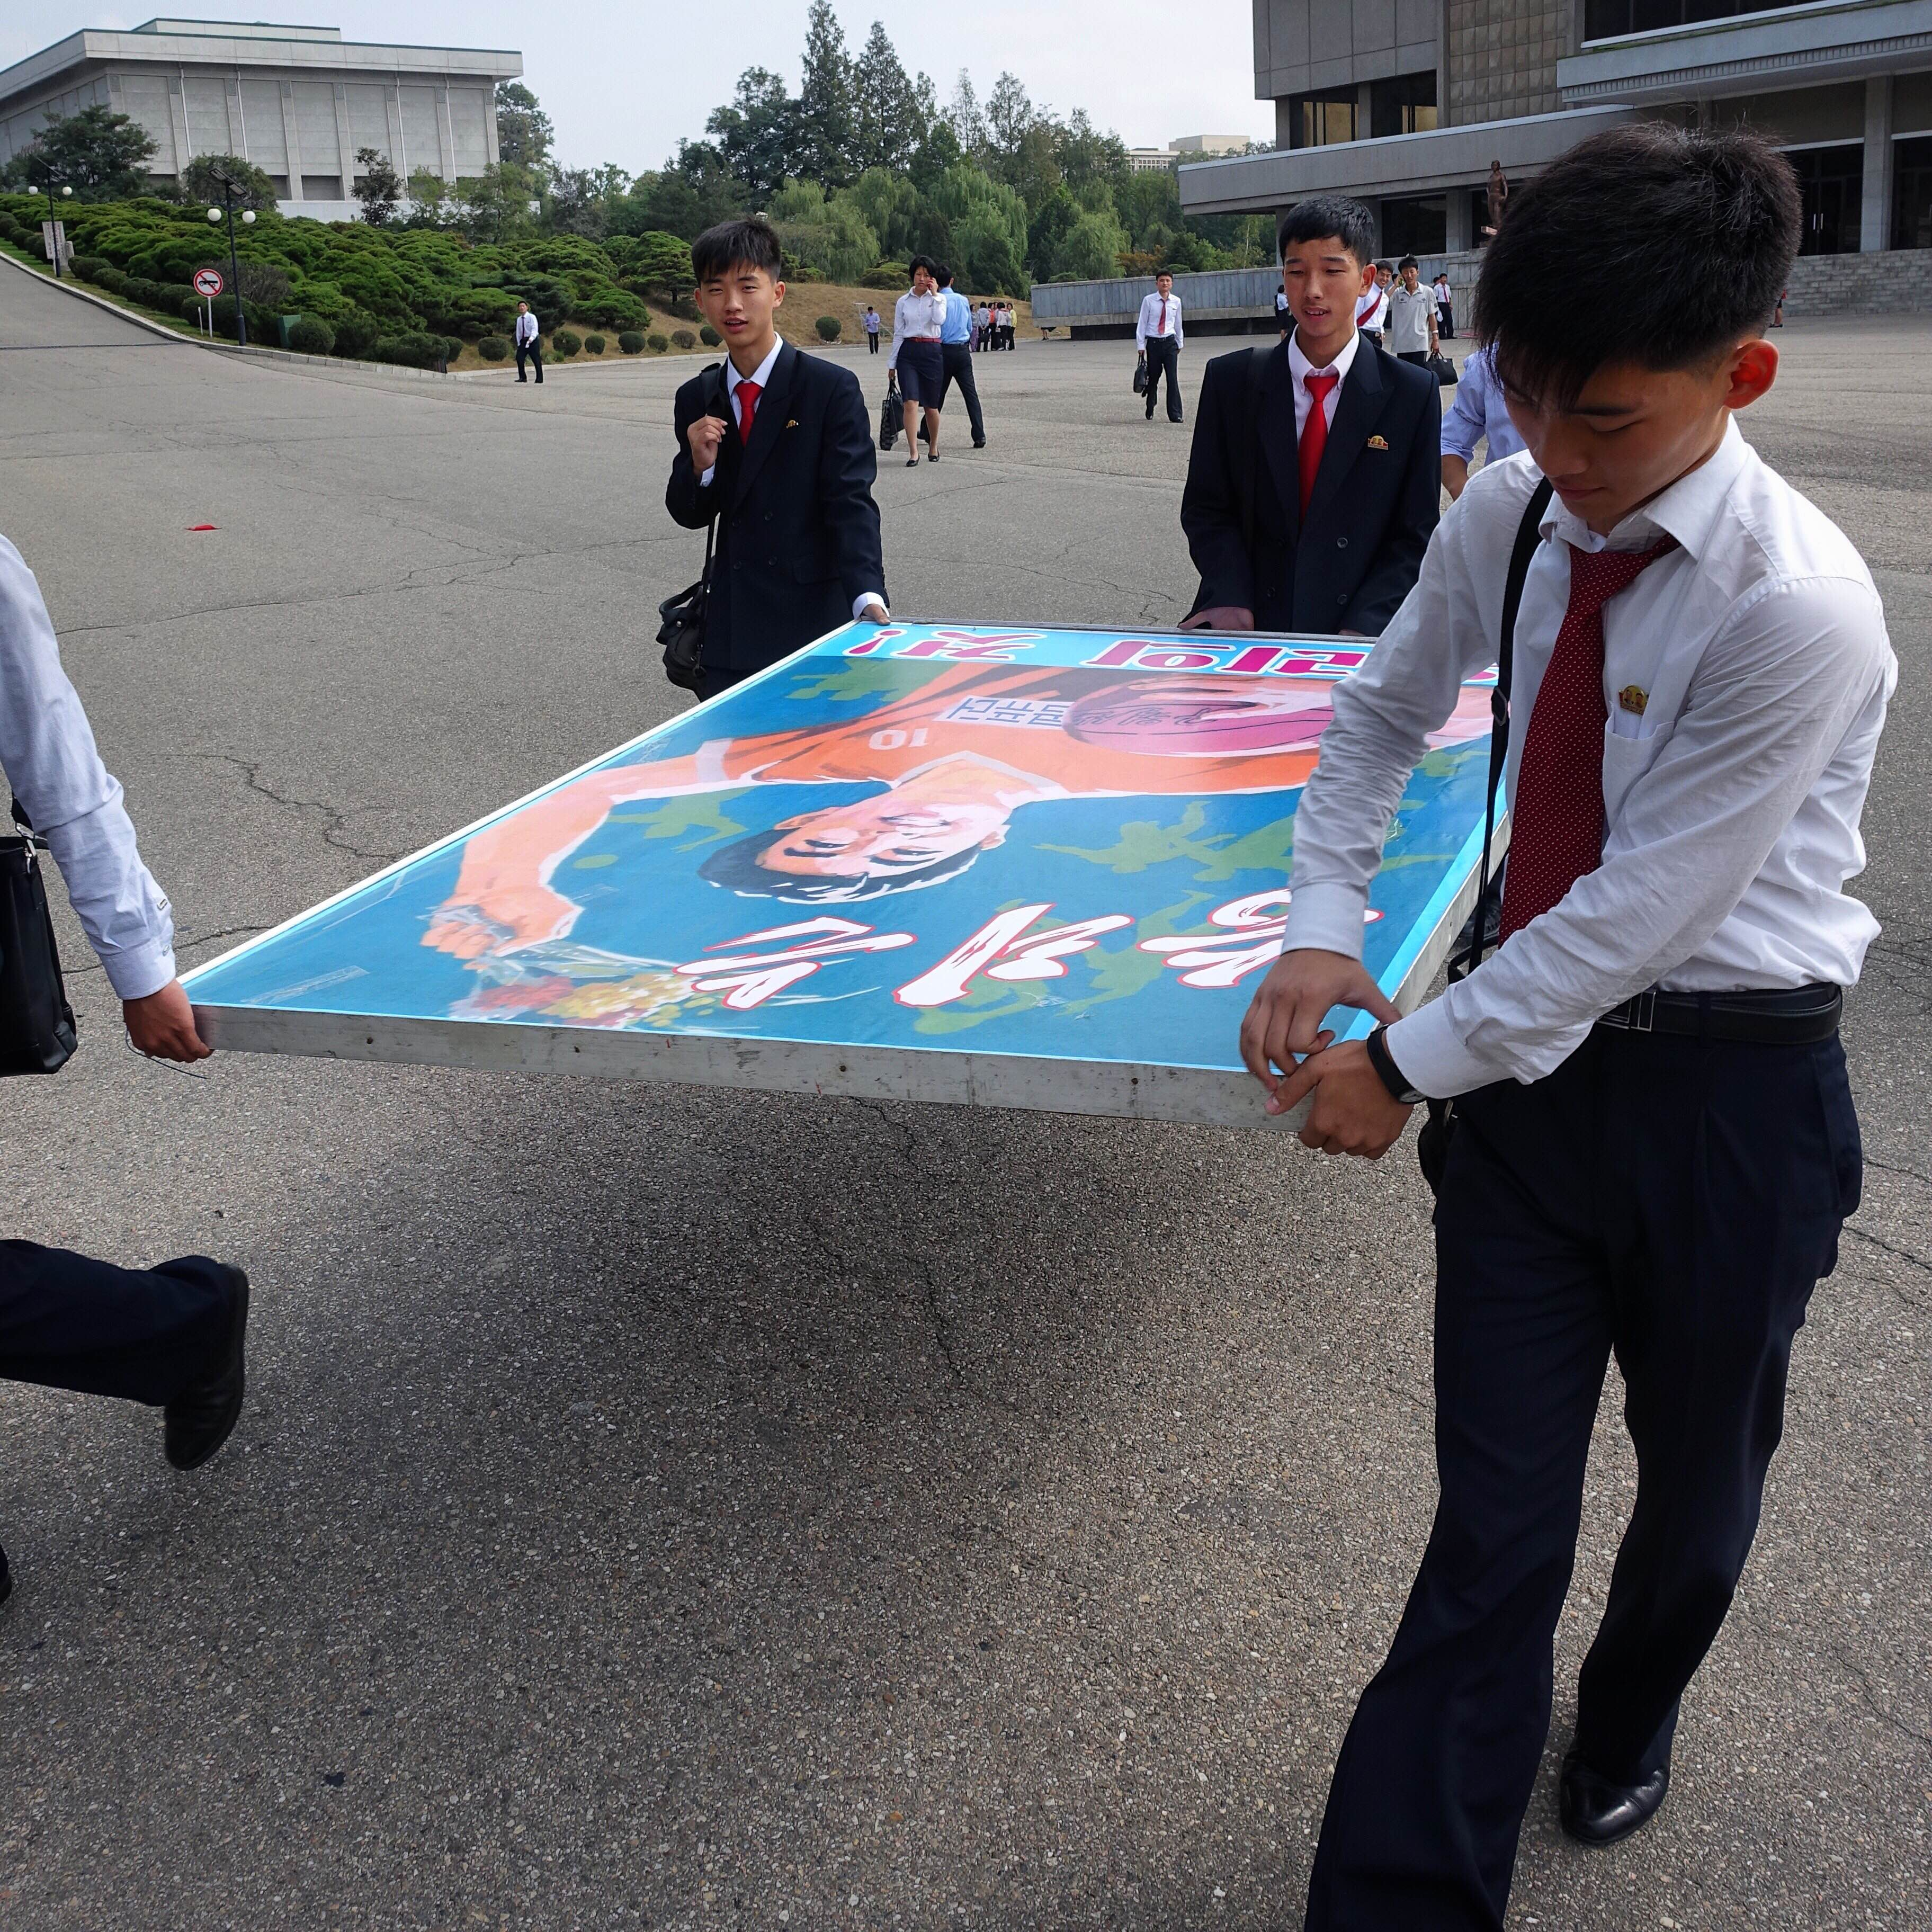 Computer Science students of Kim Il Sung University carry a poster board that says  Victory is Ours!  during the school's 78th anniversary celebrations.